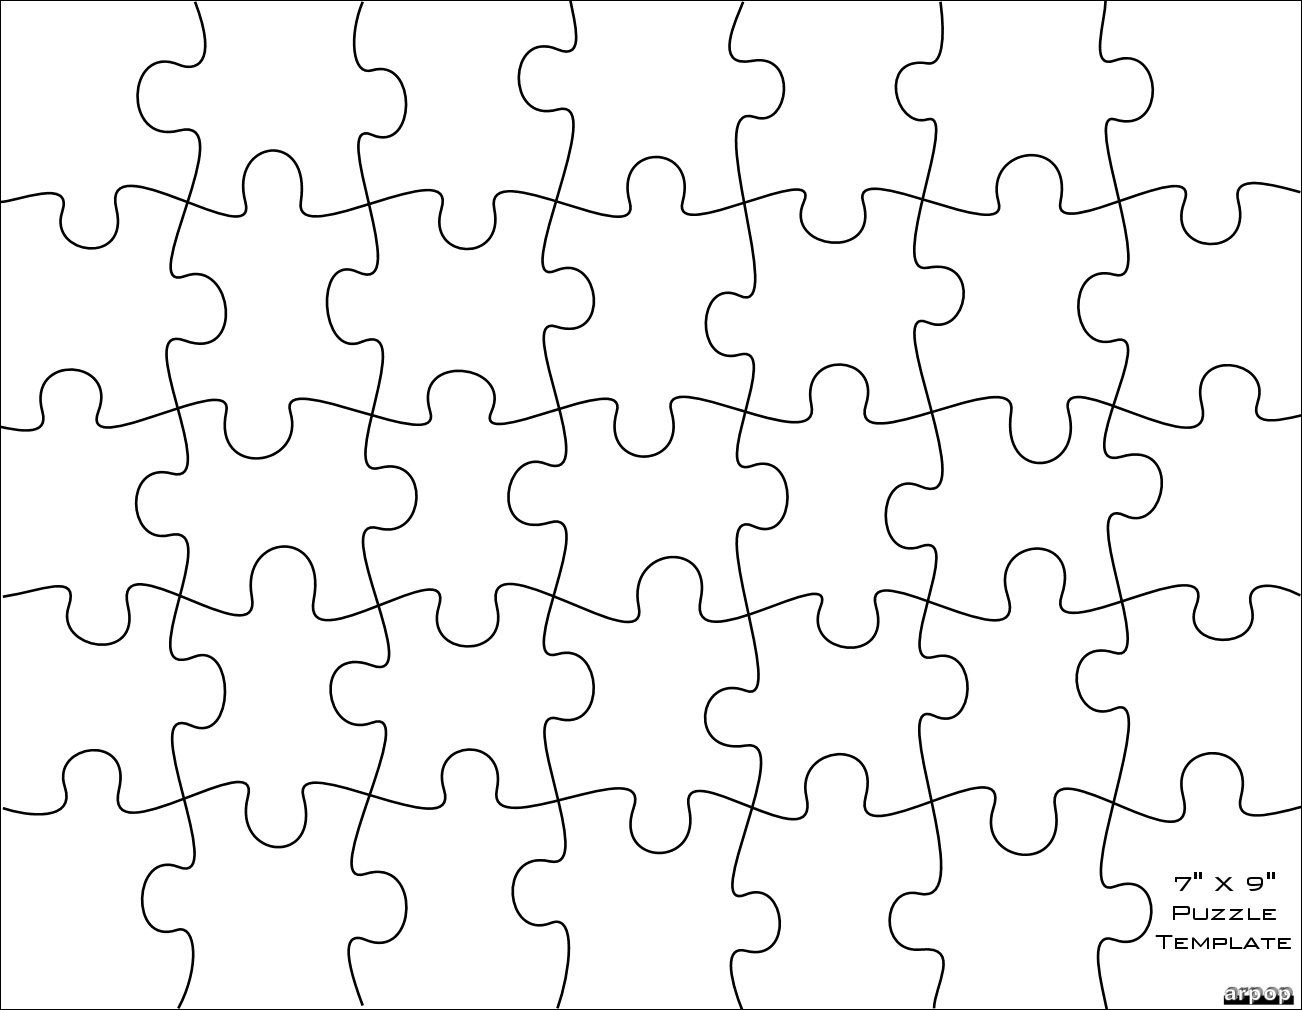 Jigsaw Pattern Templates. I Know I Want To Use It, But I Don't Know - Printable Jigsaw Puzzle Paper